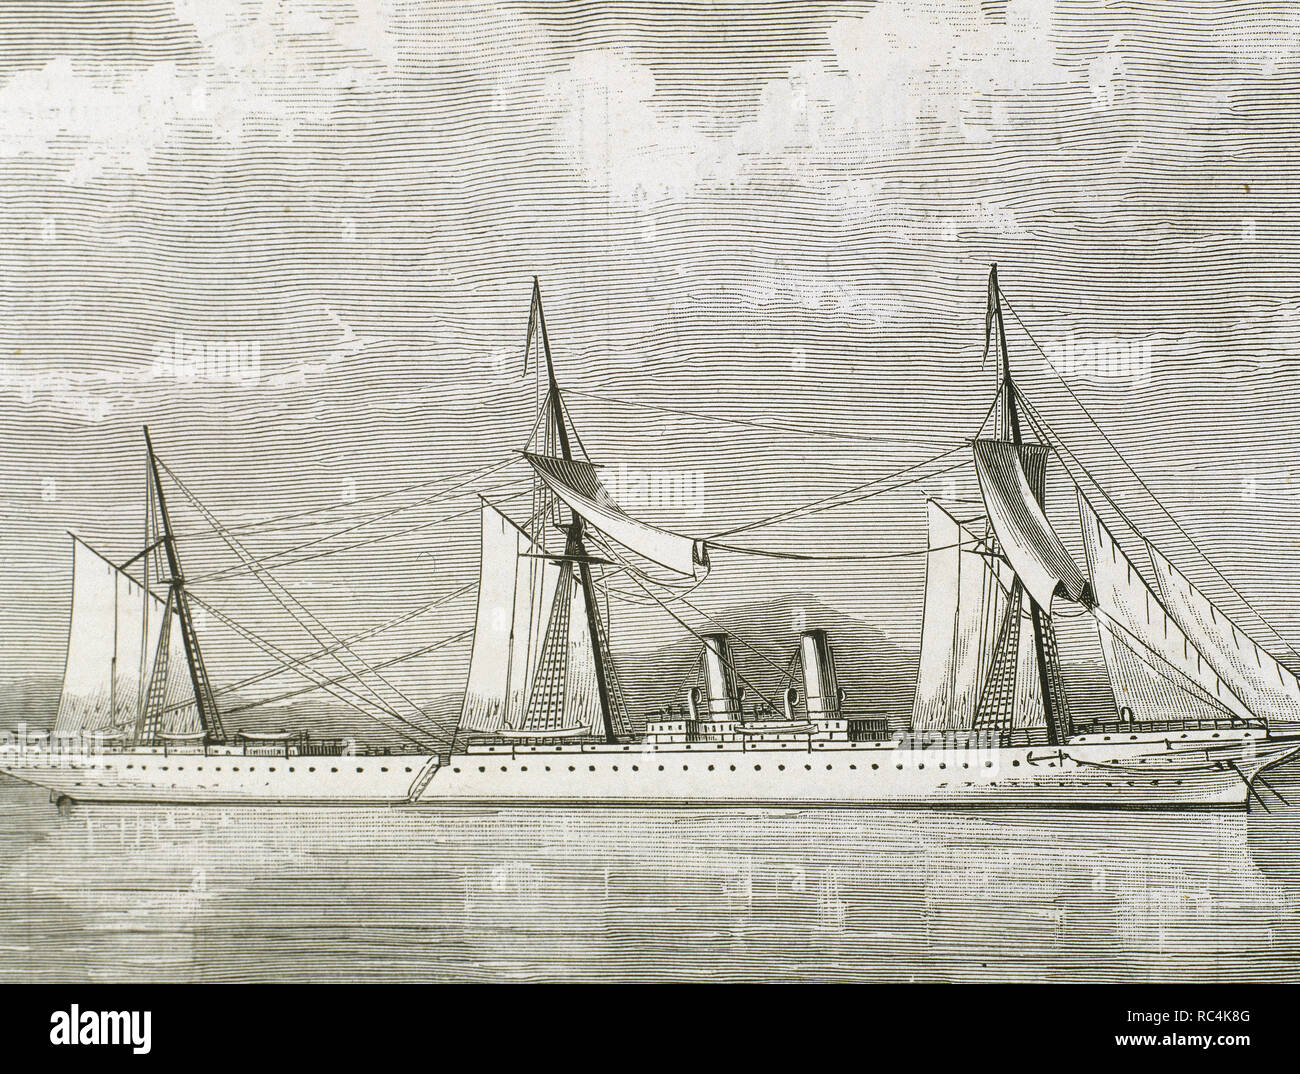 Clipper Steamship Stirling Castle. 19th century. Engraving. - Stock Image